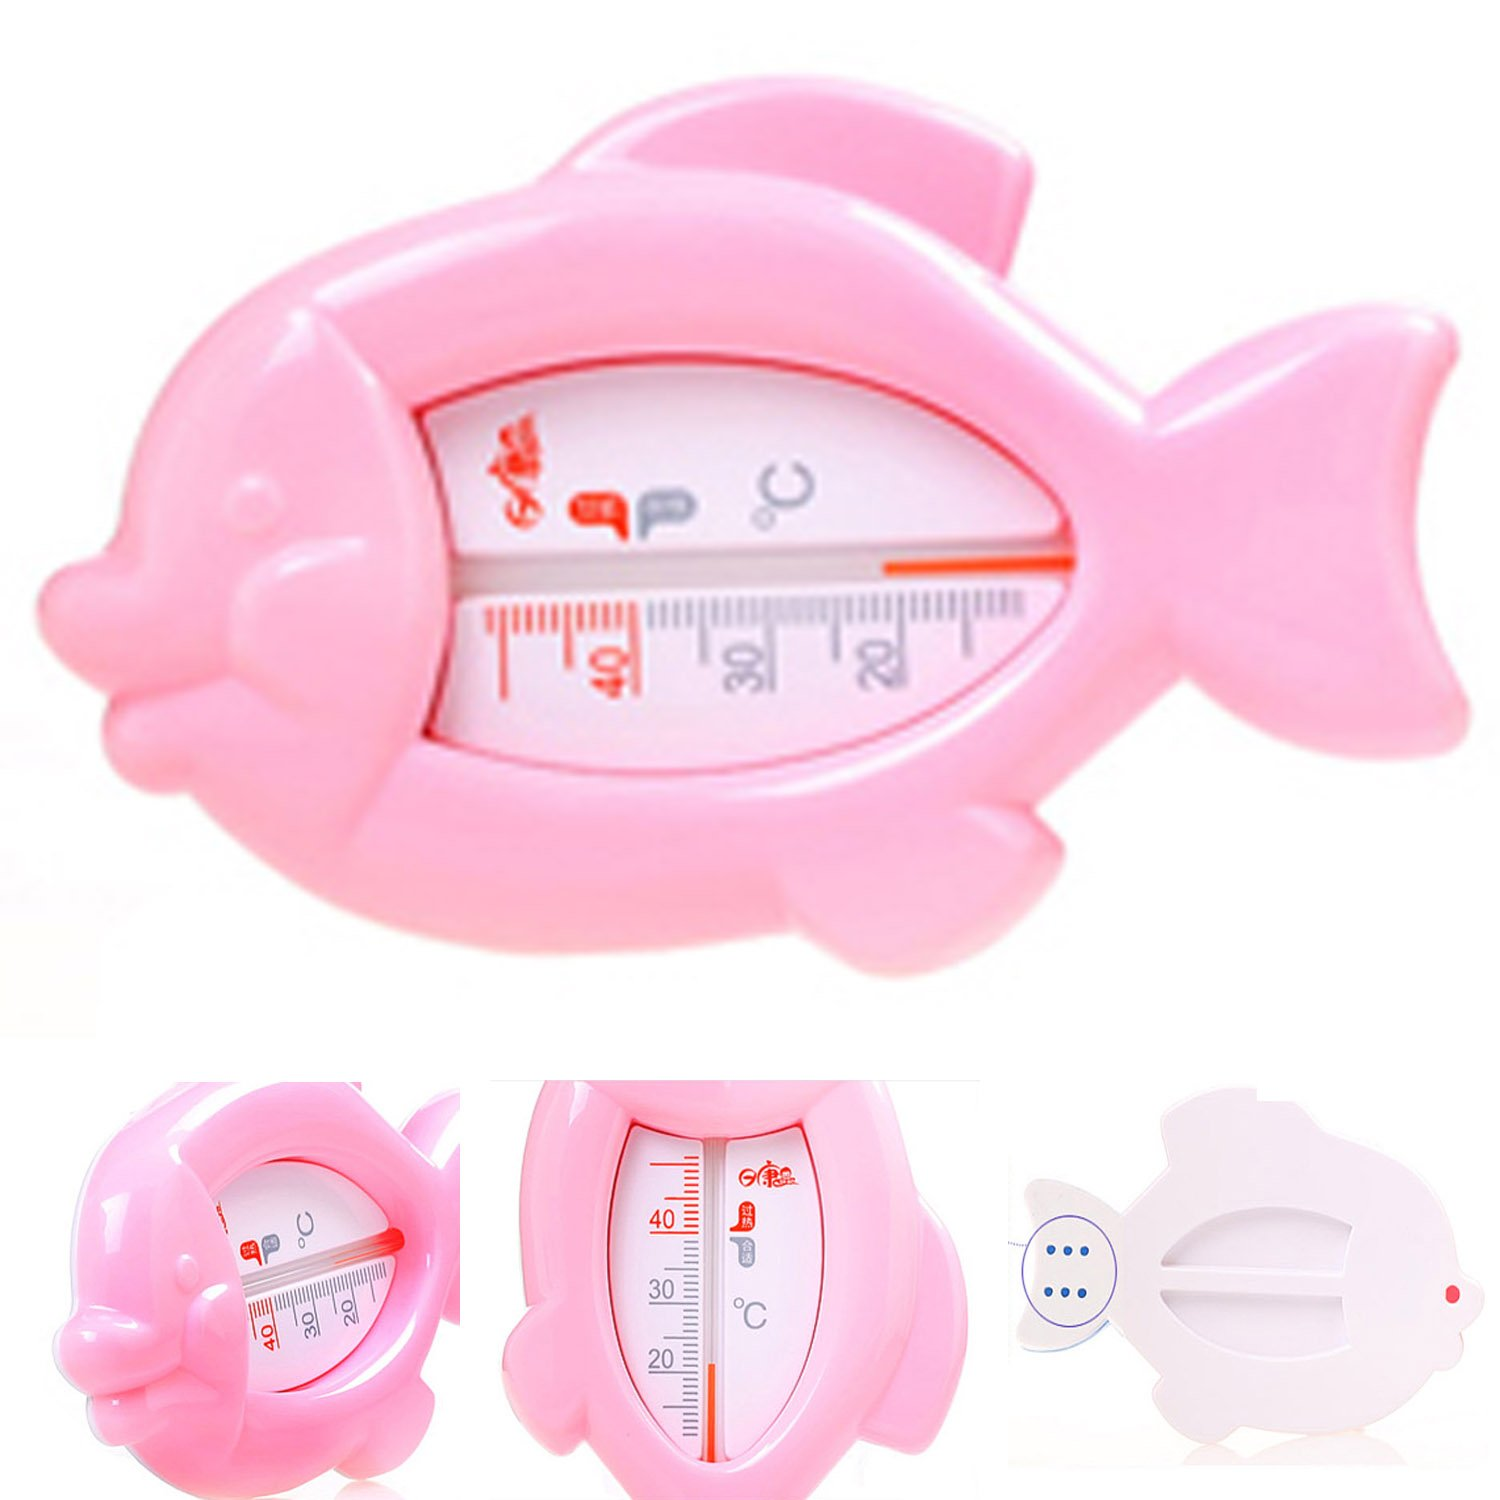 LSQtronics baby fish bath thermometers/indoor thermometer, RK3642(pink)